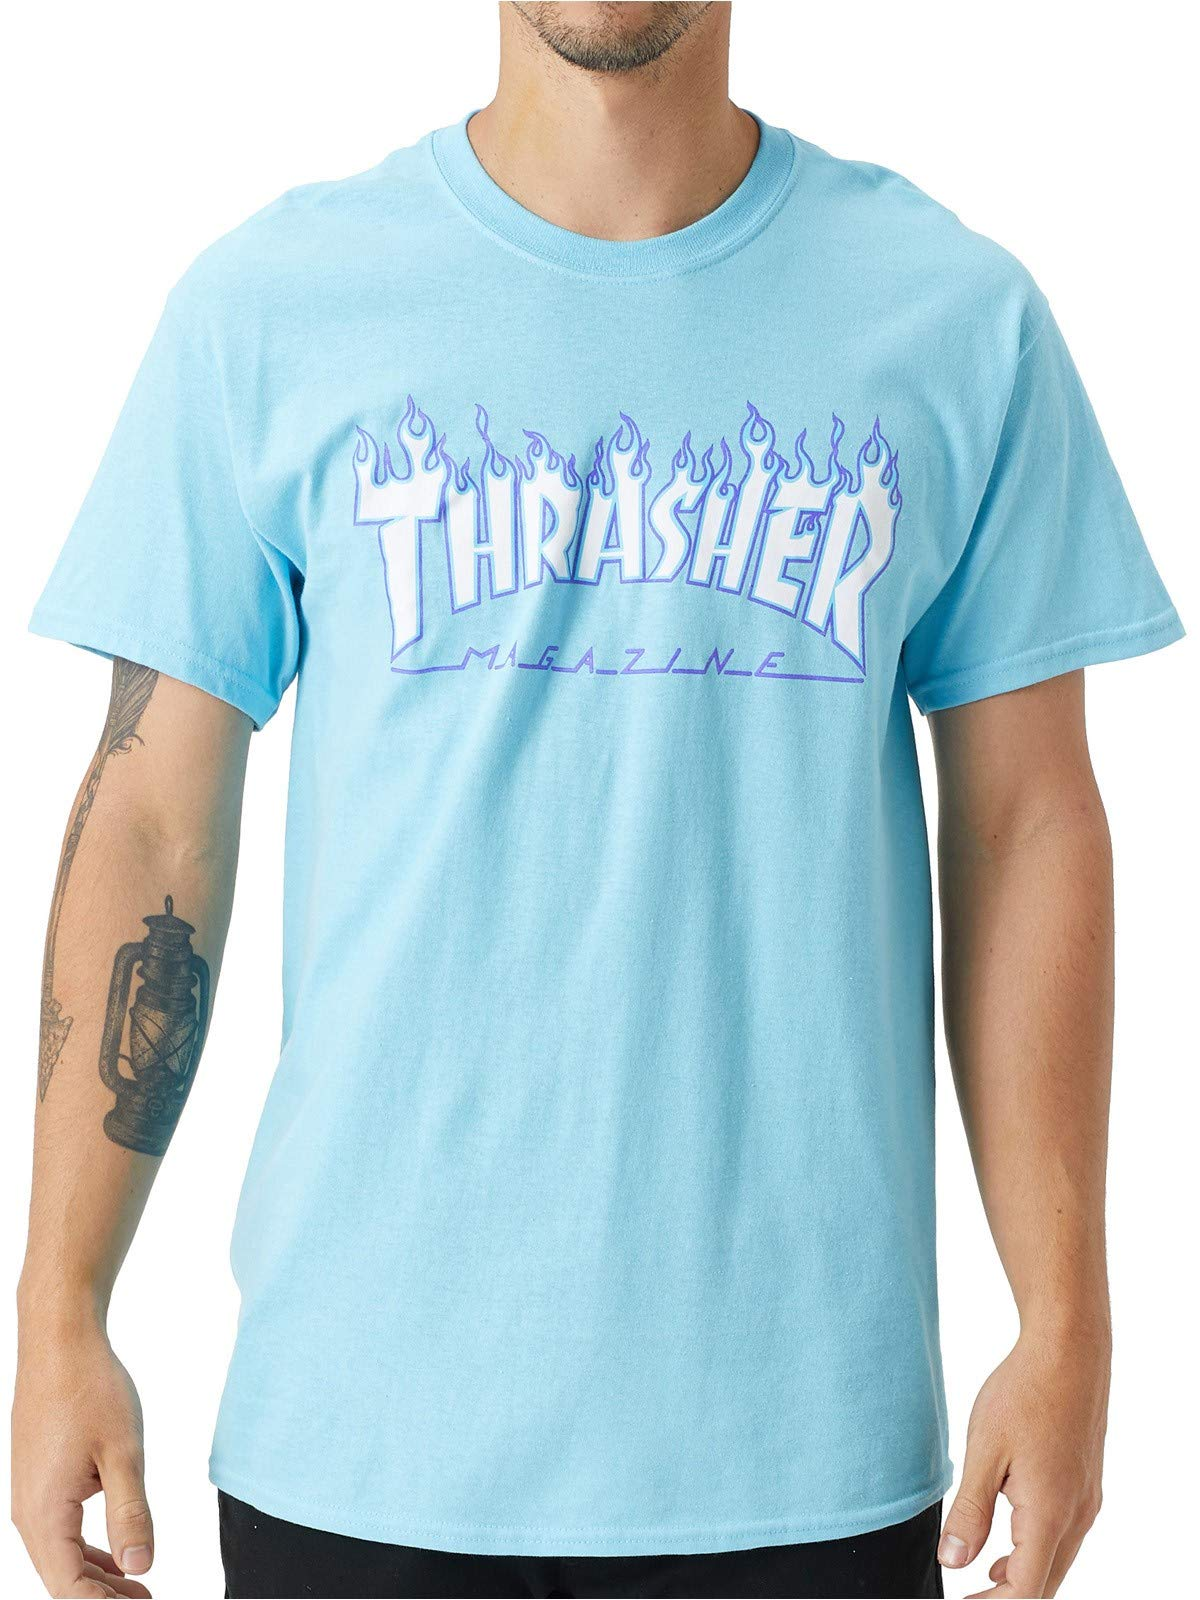 Thrasher Flame S/S Tee Sky Blue S by Thrasher (Image #1)